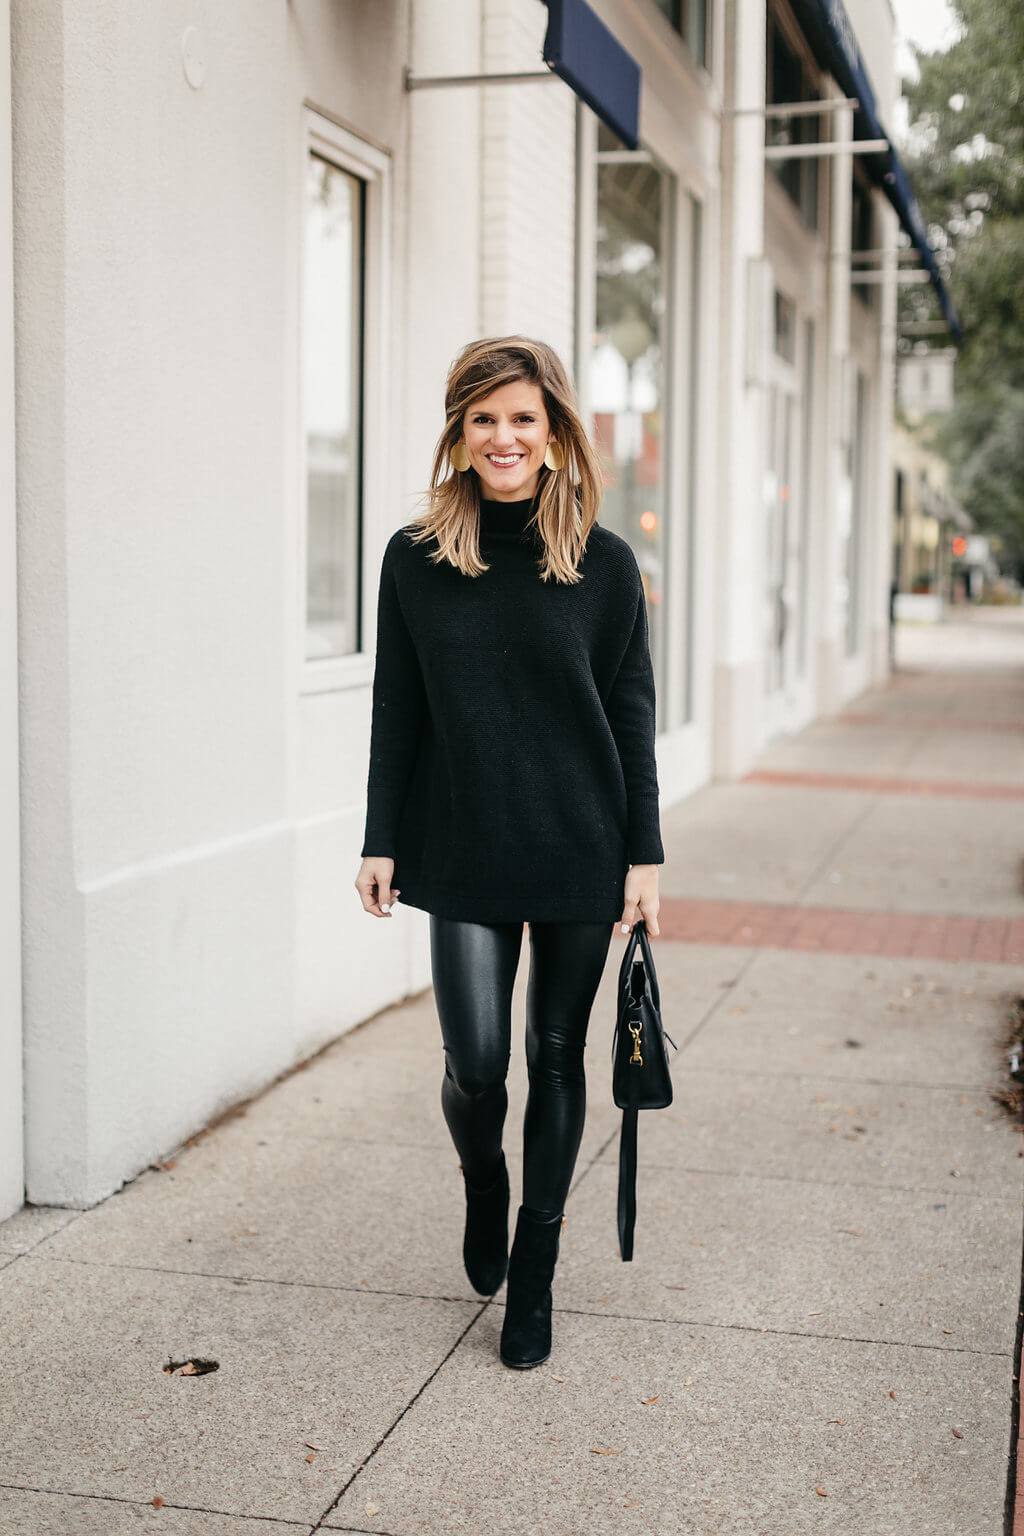 59a6ccce1dad1 black tunic sweater, leather leggings, and black booties